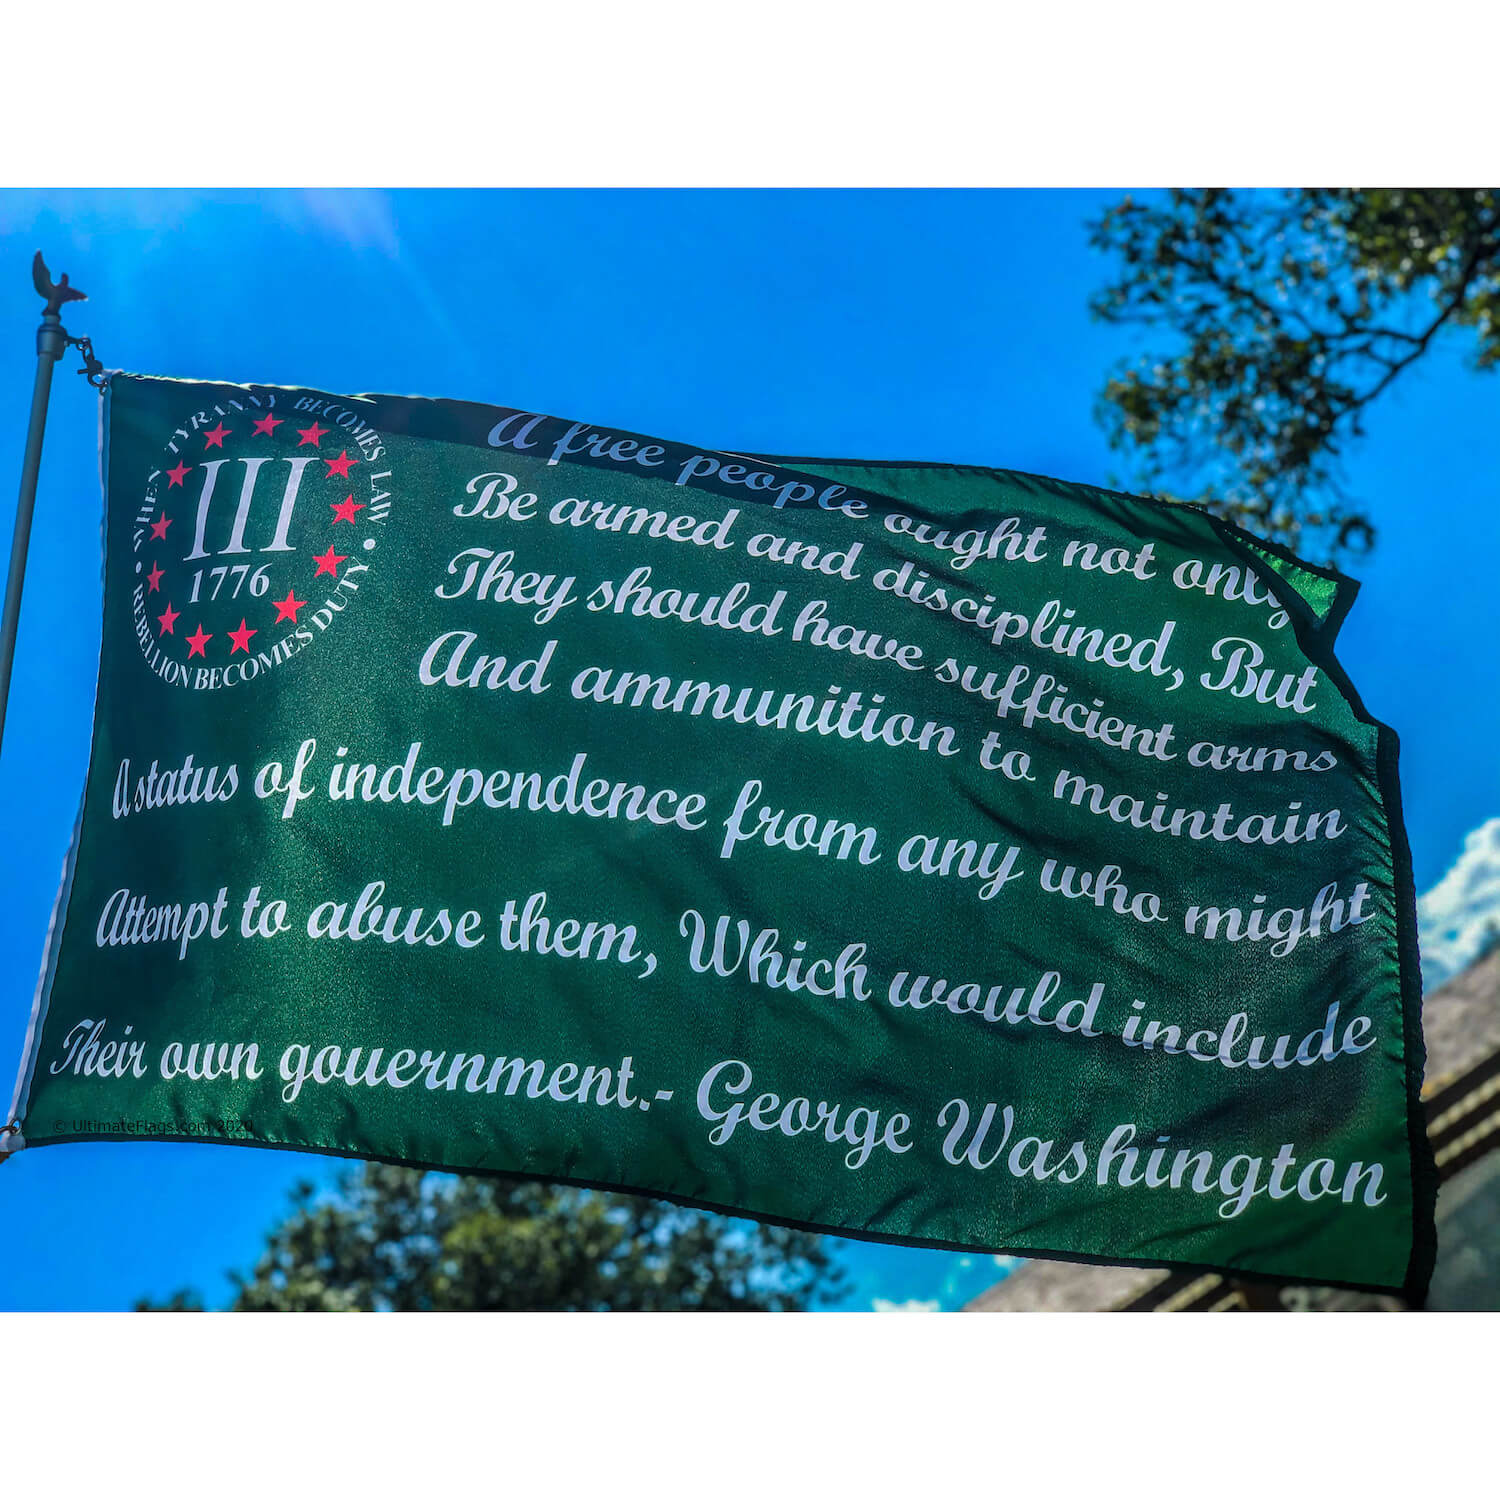 2nd amendment George Washington Bear Arms quote on flag